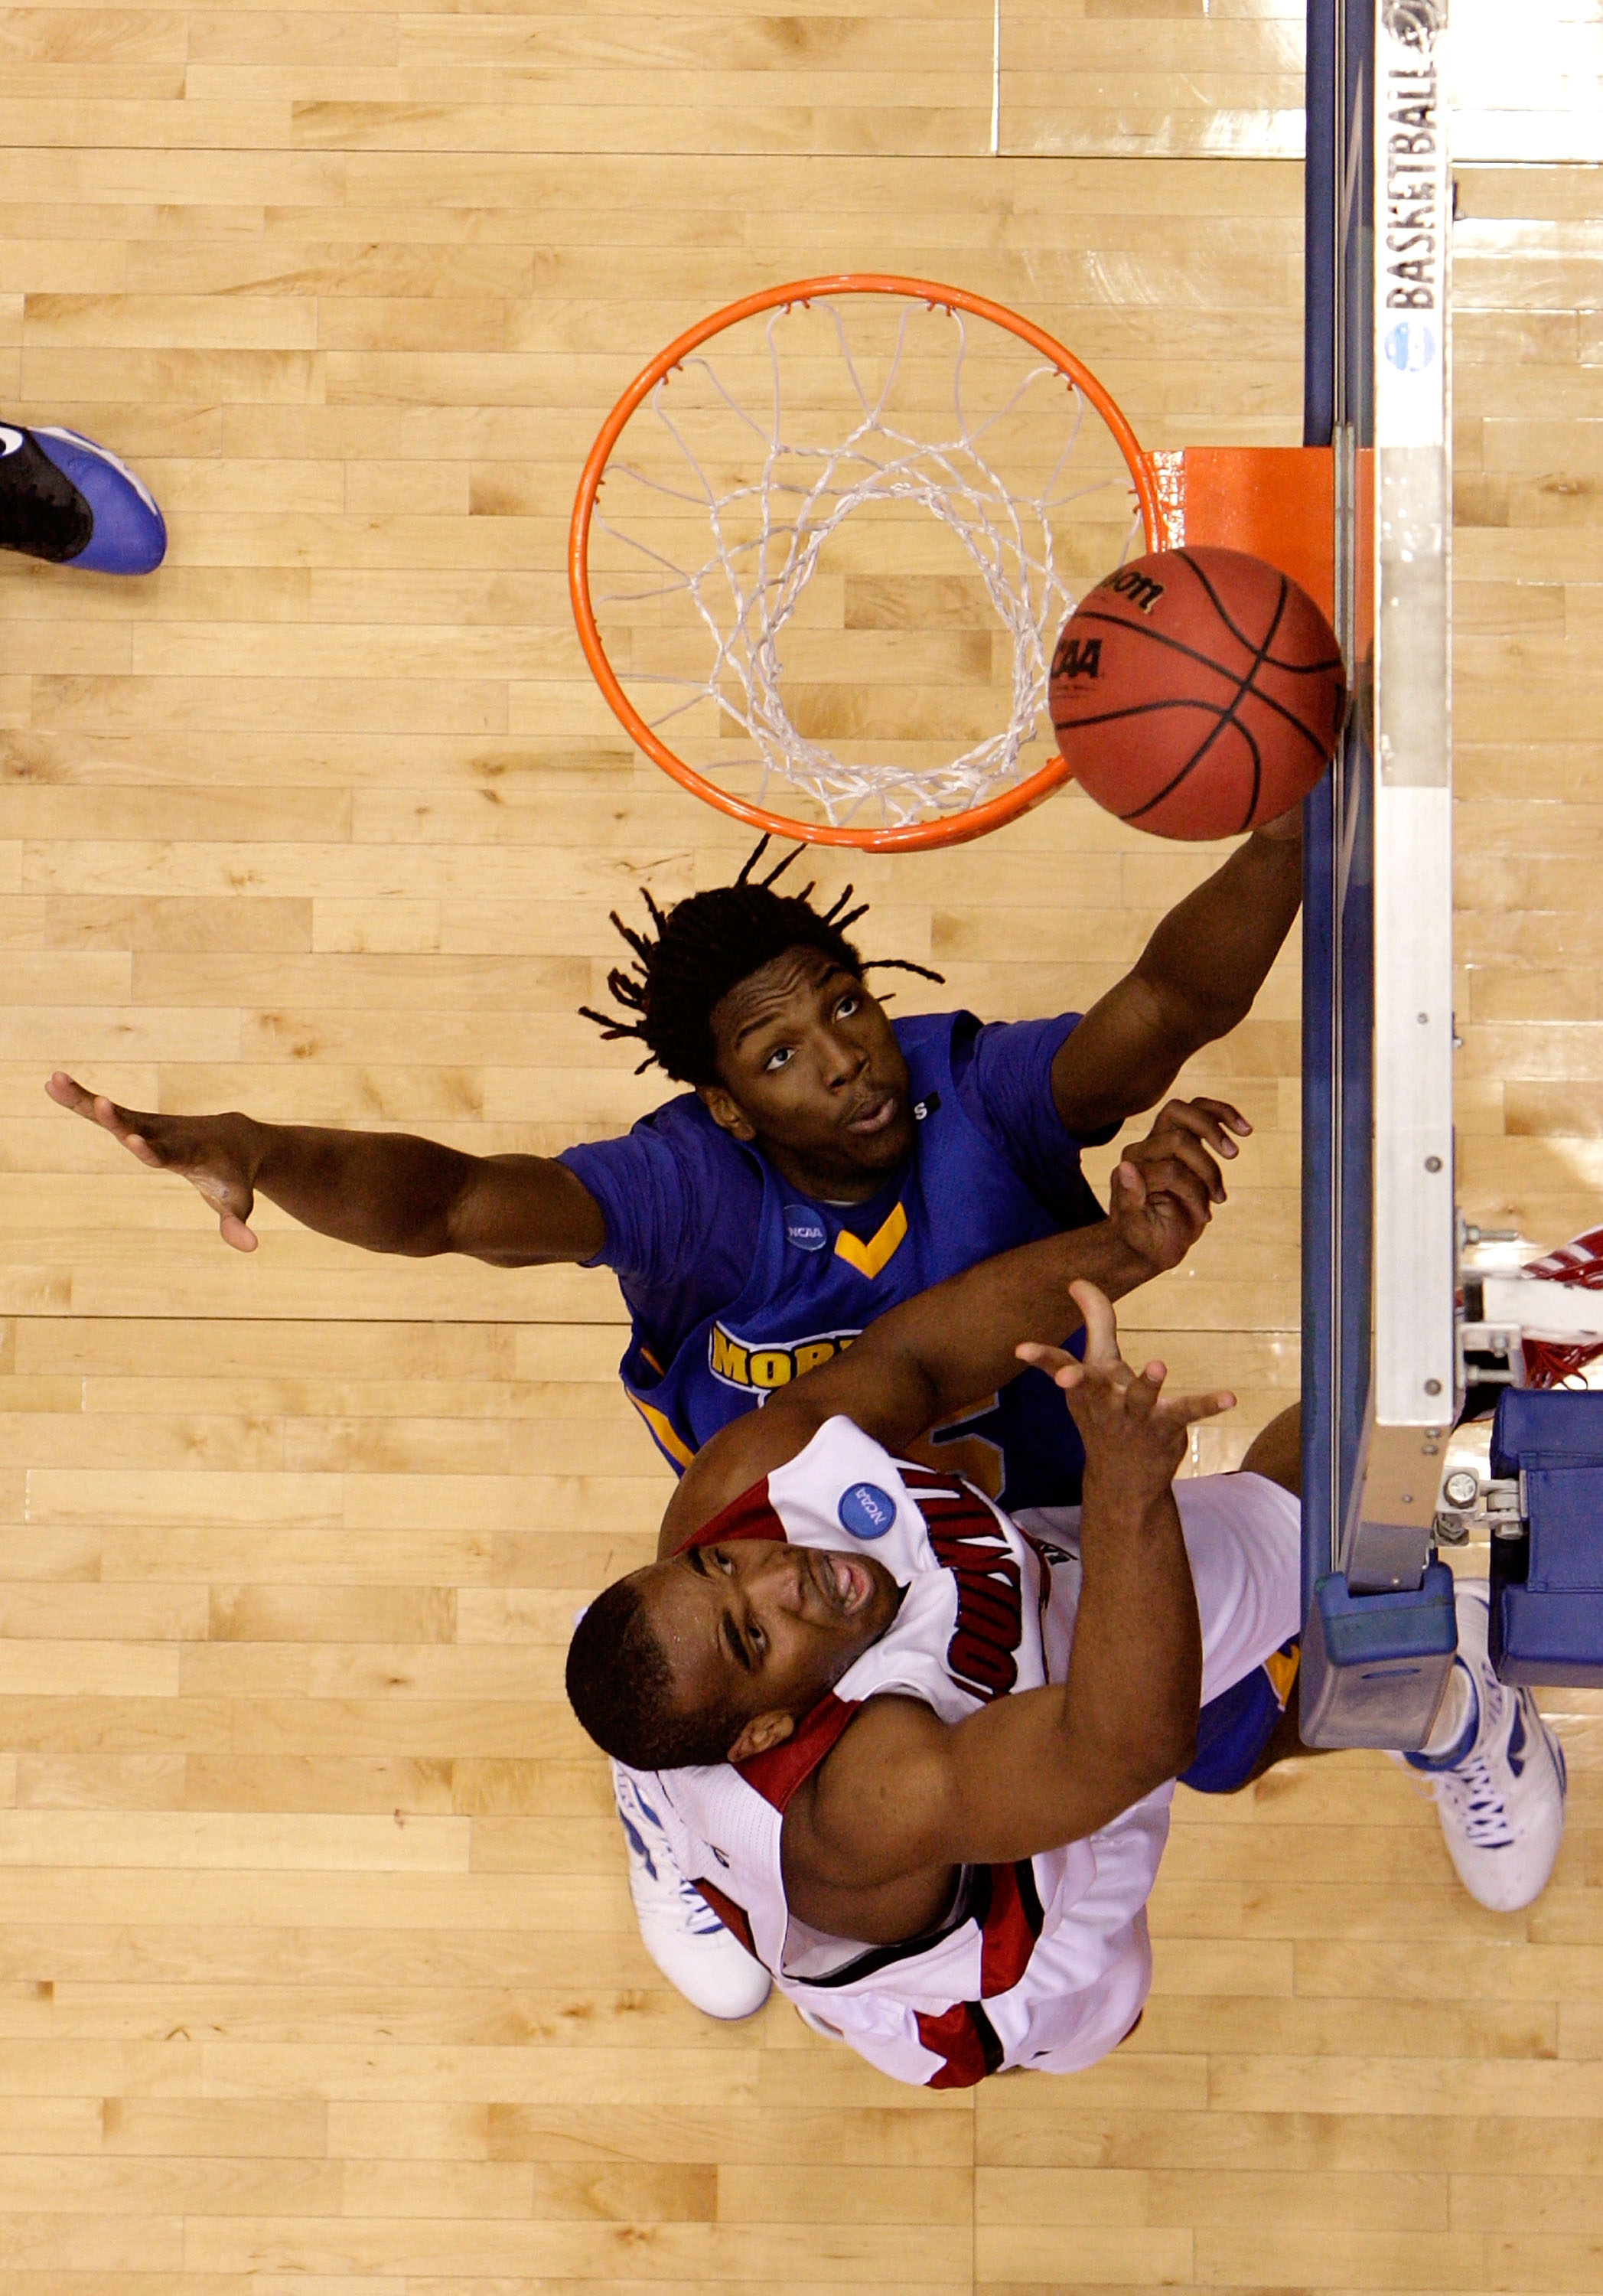 DAYTON, OH - MARCH 20: Samardo Samuels #24 of the Louisville Cardinals drives to the hoop against Kenneth Faried #35 of the Morehead State Eagles during the first round of the NCAA Division I Men's Basketball Tournament at the University of Dayton Arena o